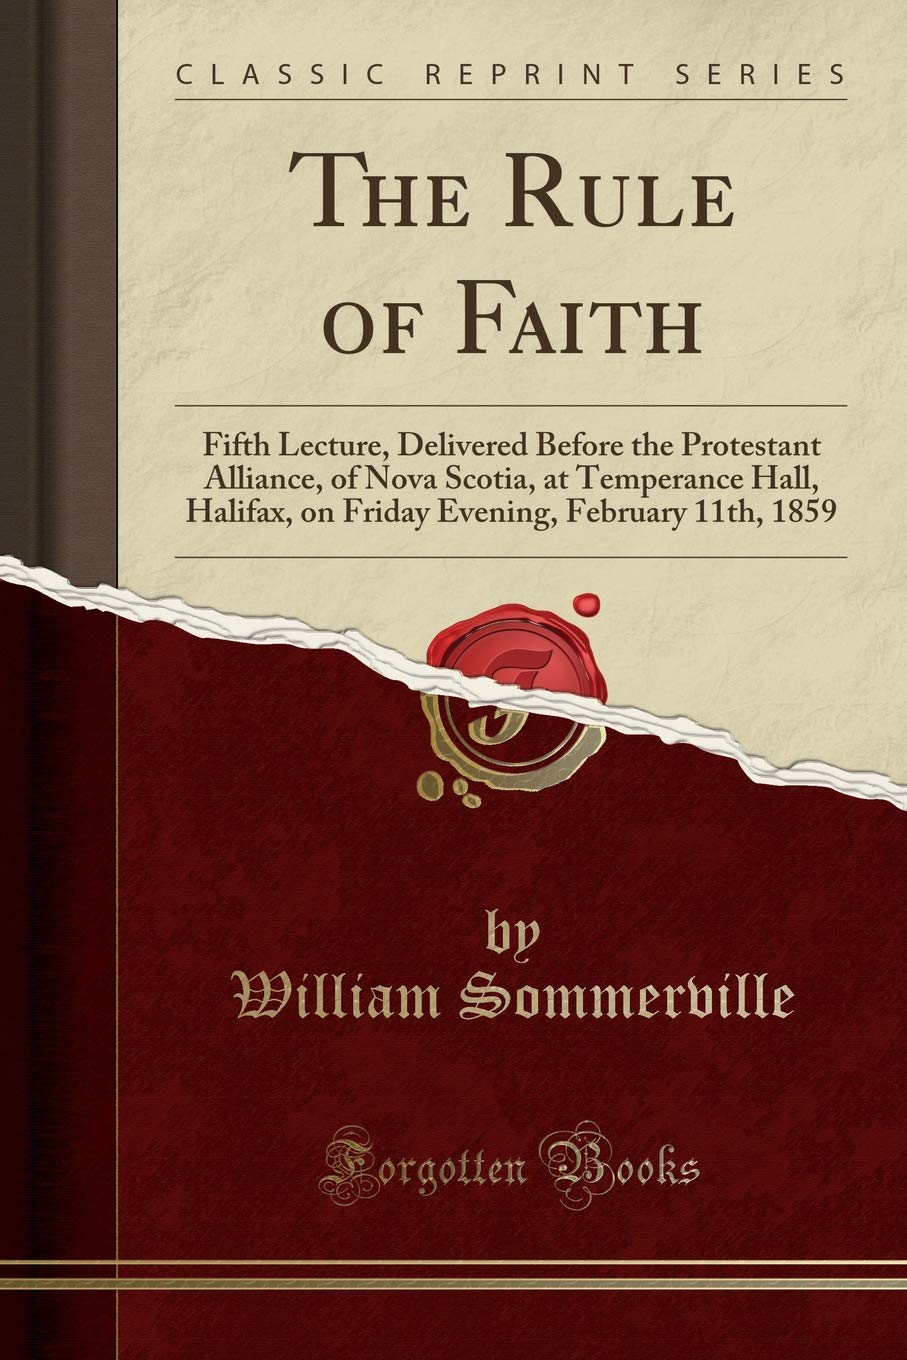 The Rule of Faith: Fifth Lecture, Delivered Before the Protestant Alliance, of Nova Scotia, at Temperance Hall, Halifax, on Friday Evening, February 11th, 1859 (Classic Reprint) PDF ePub fb2 book